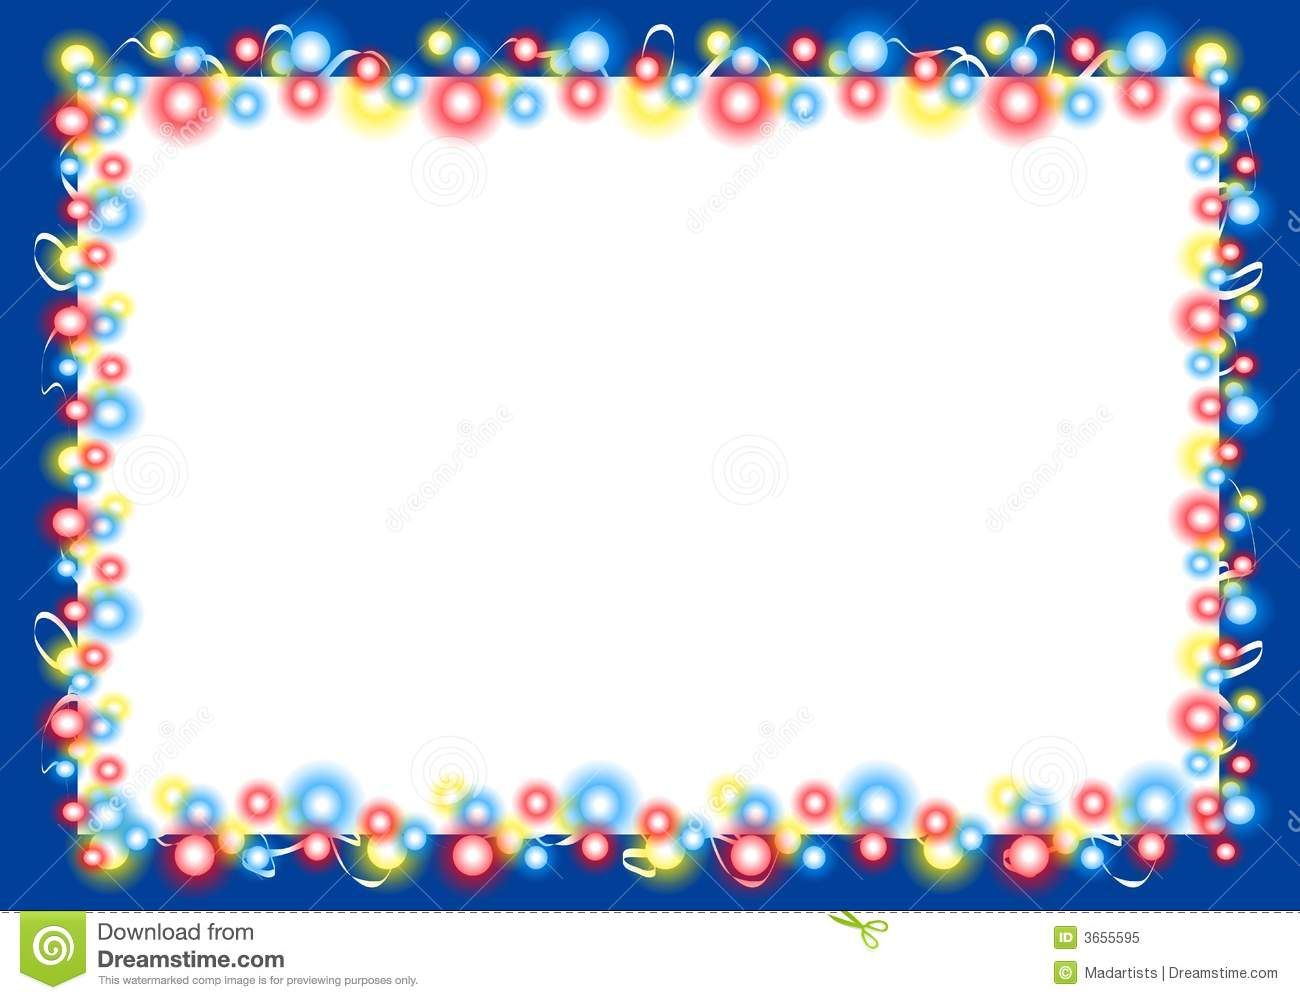 Background Border Of Glowing Christmas